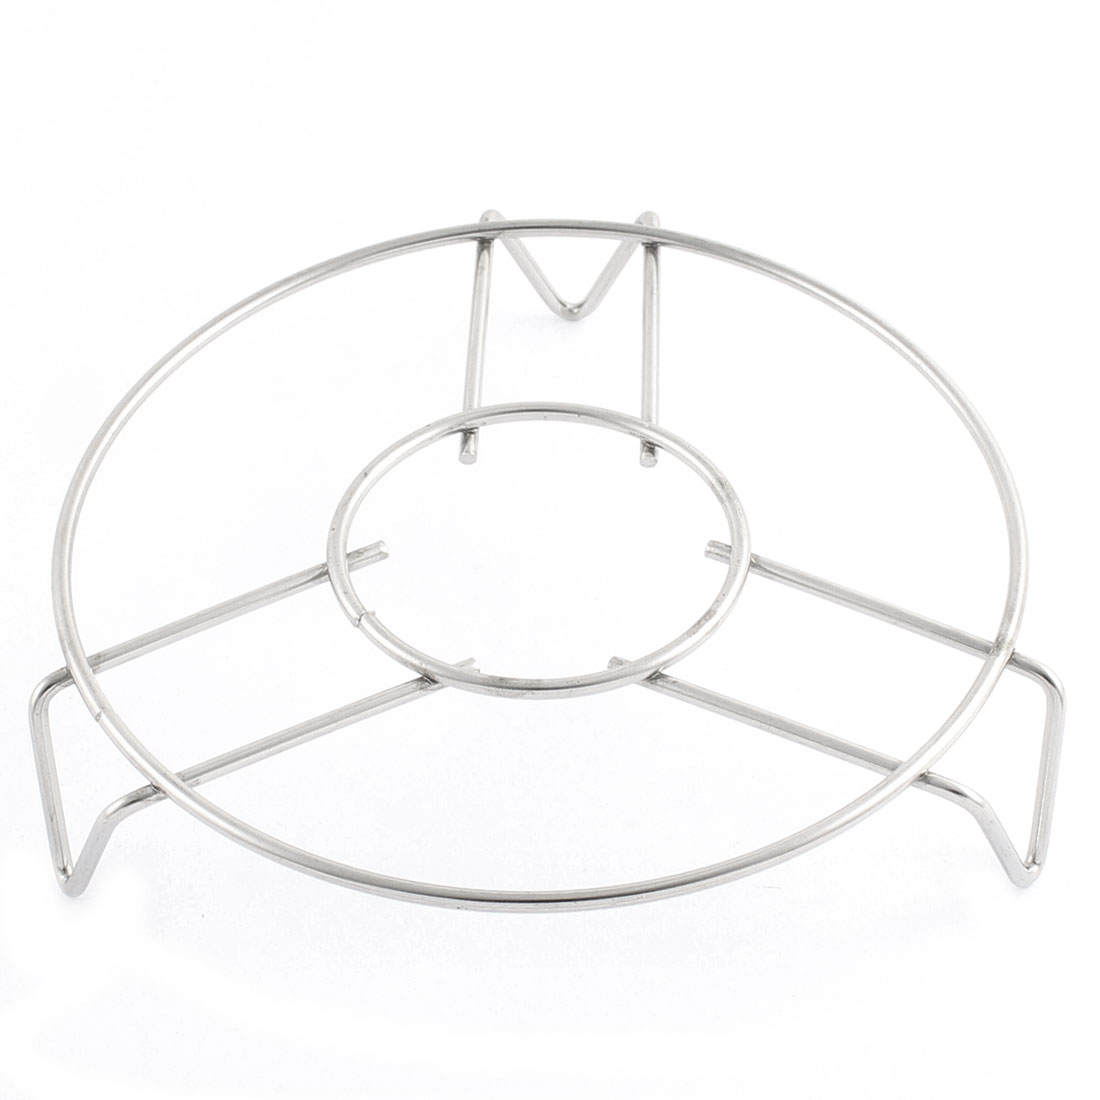 Household Kitchen Metal Round Food Cooking Steaming Rack Stand 14cm Diameter Silver Tone